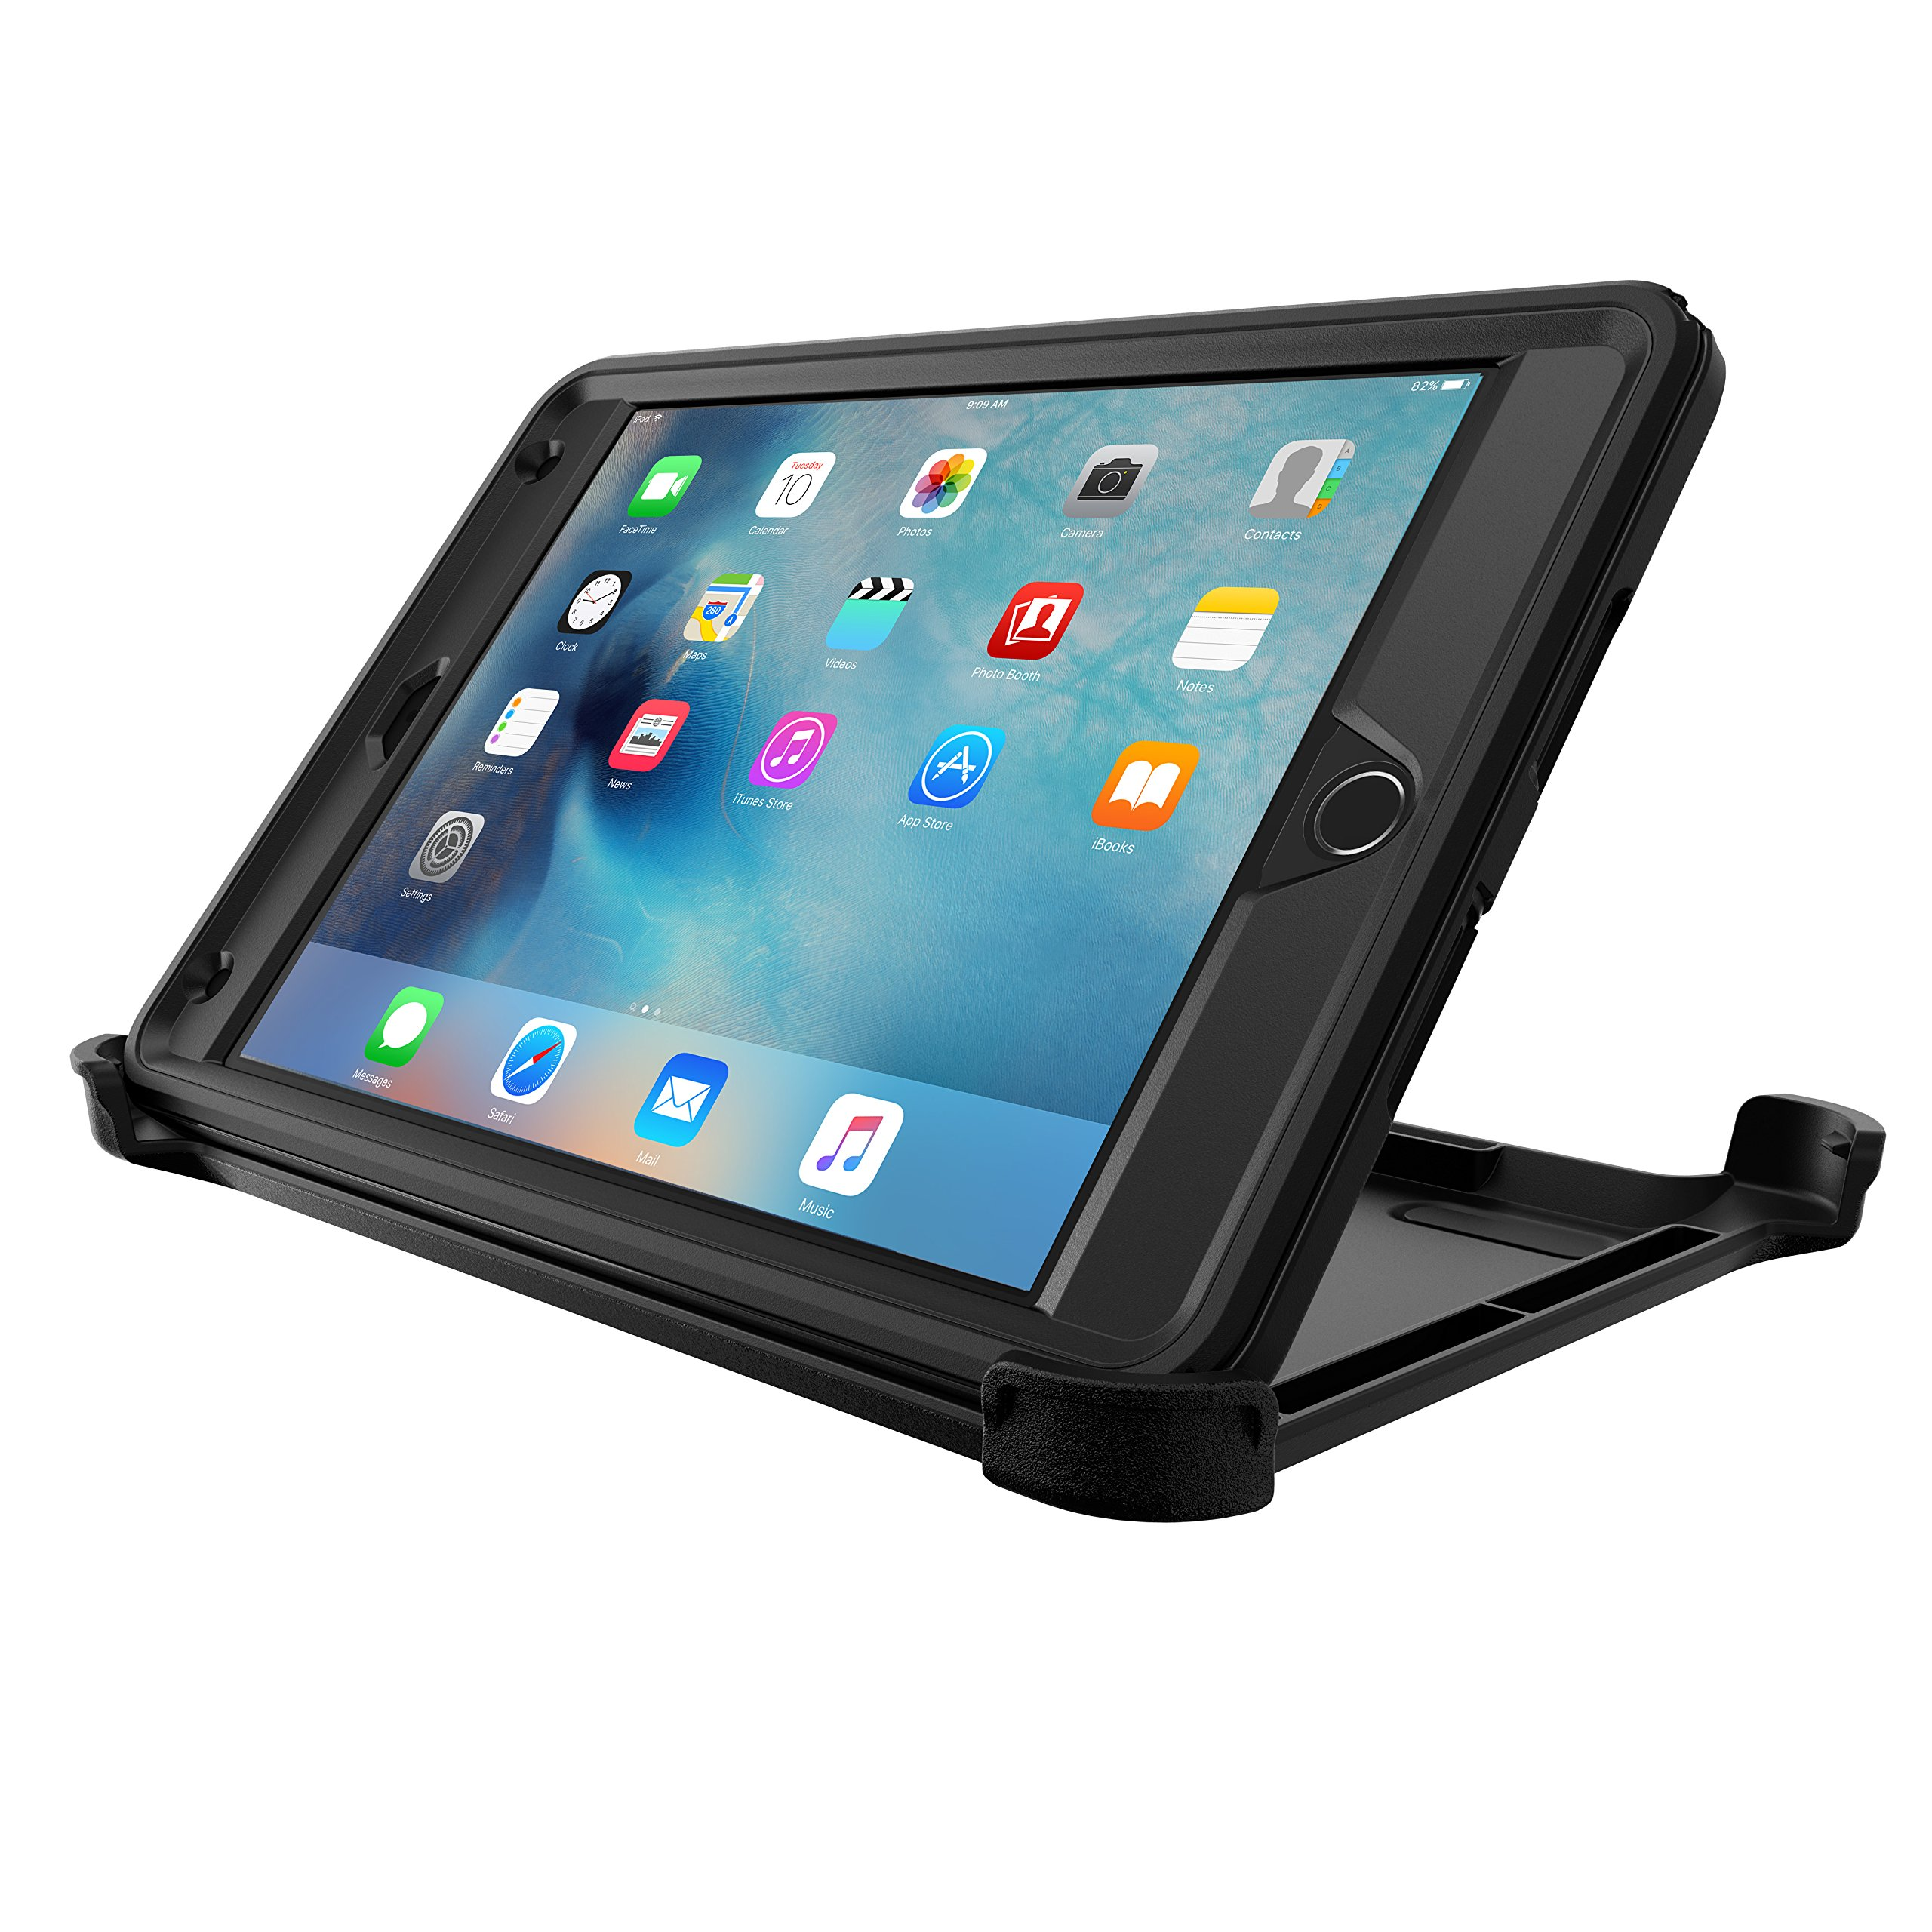 OtterBox DEFENDER SERIES Case for iPad Mini 4 (ONLY) - Retail Packaging - BLACK by OtterBox (Image #6)